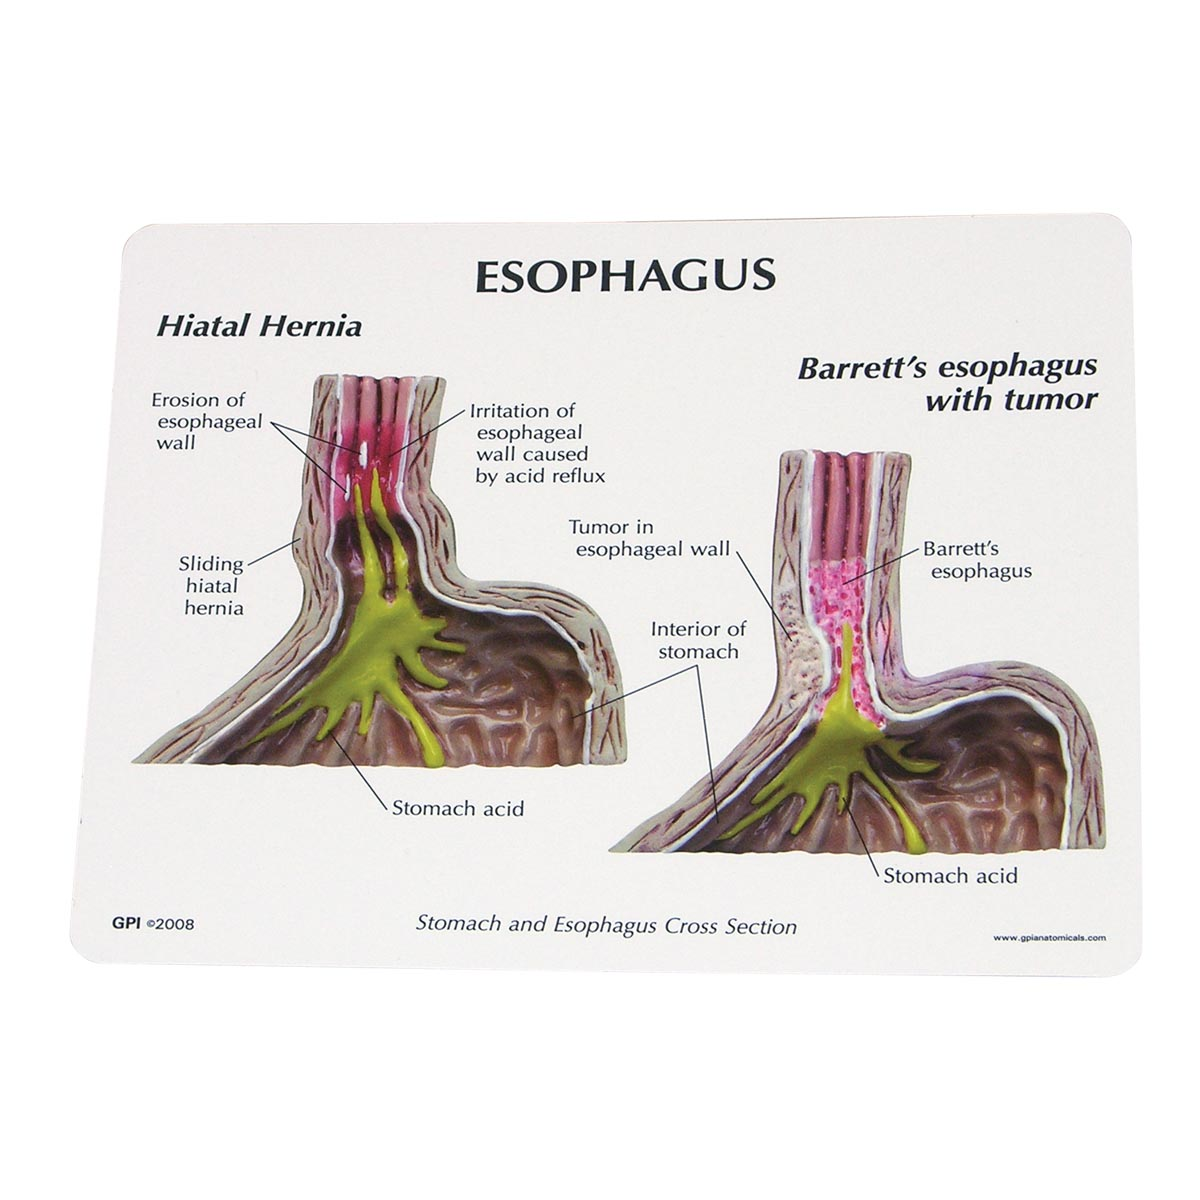 gastro esophageal reflux disease gerd Gastroesophageal reflux disease (gerd) is a condition in which the stomach contents leak backward from the stomach into the esophagus (food pipe) food travels from your mouth to the stomach through your esophagus.